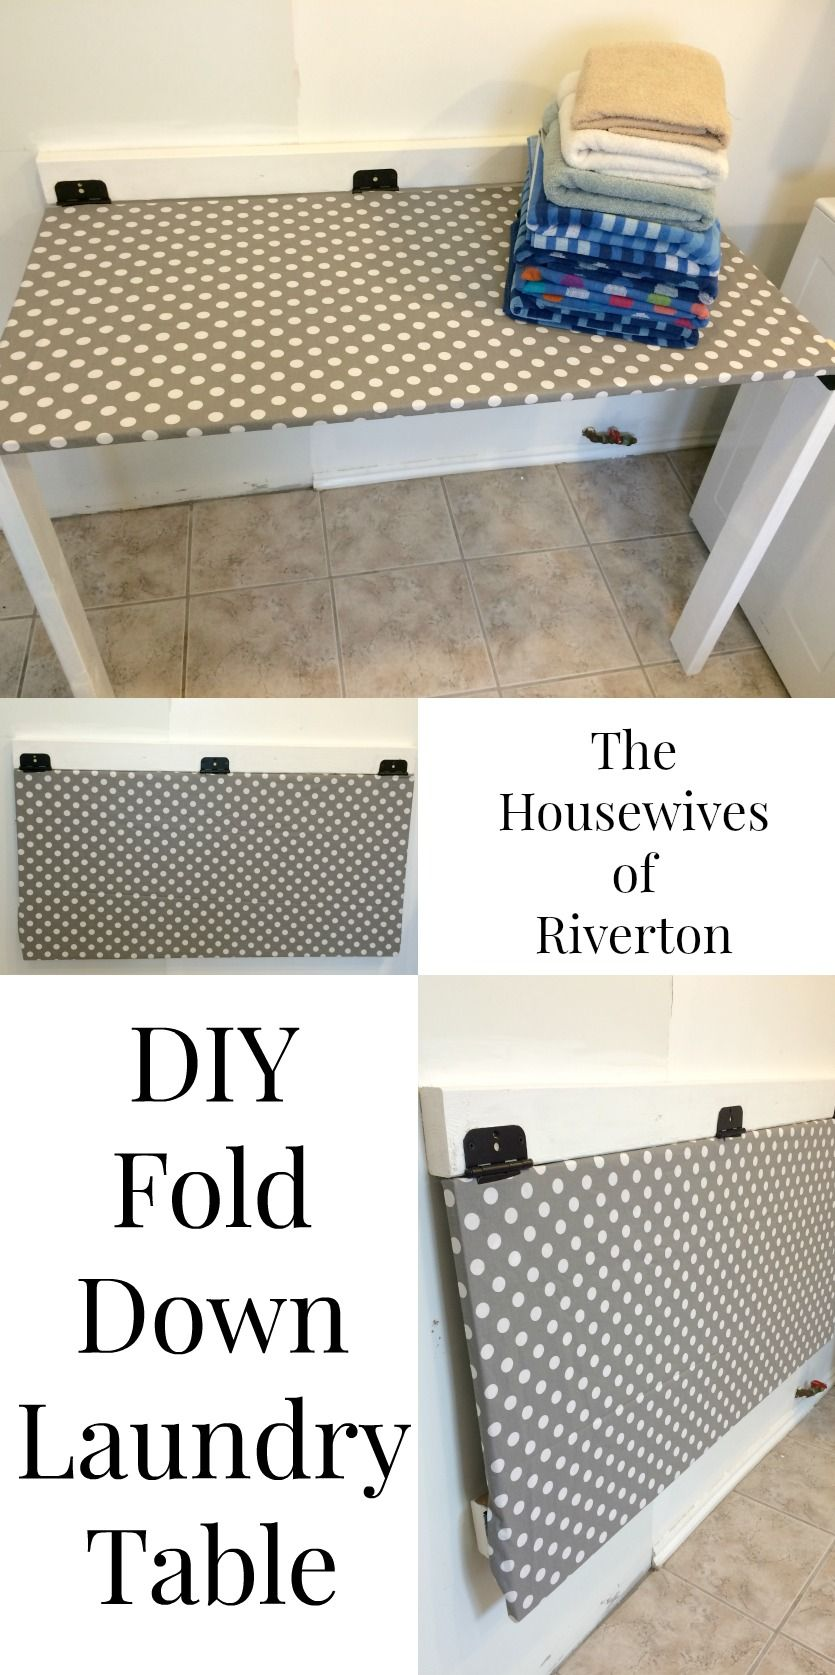 Diy drop down laundry table laundry table laundry and ads diy fold down laundry table sienteglade ad glade housewivesofriverton i love this idea solutioingenieria Image collections